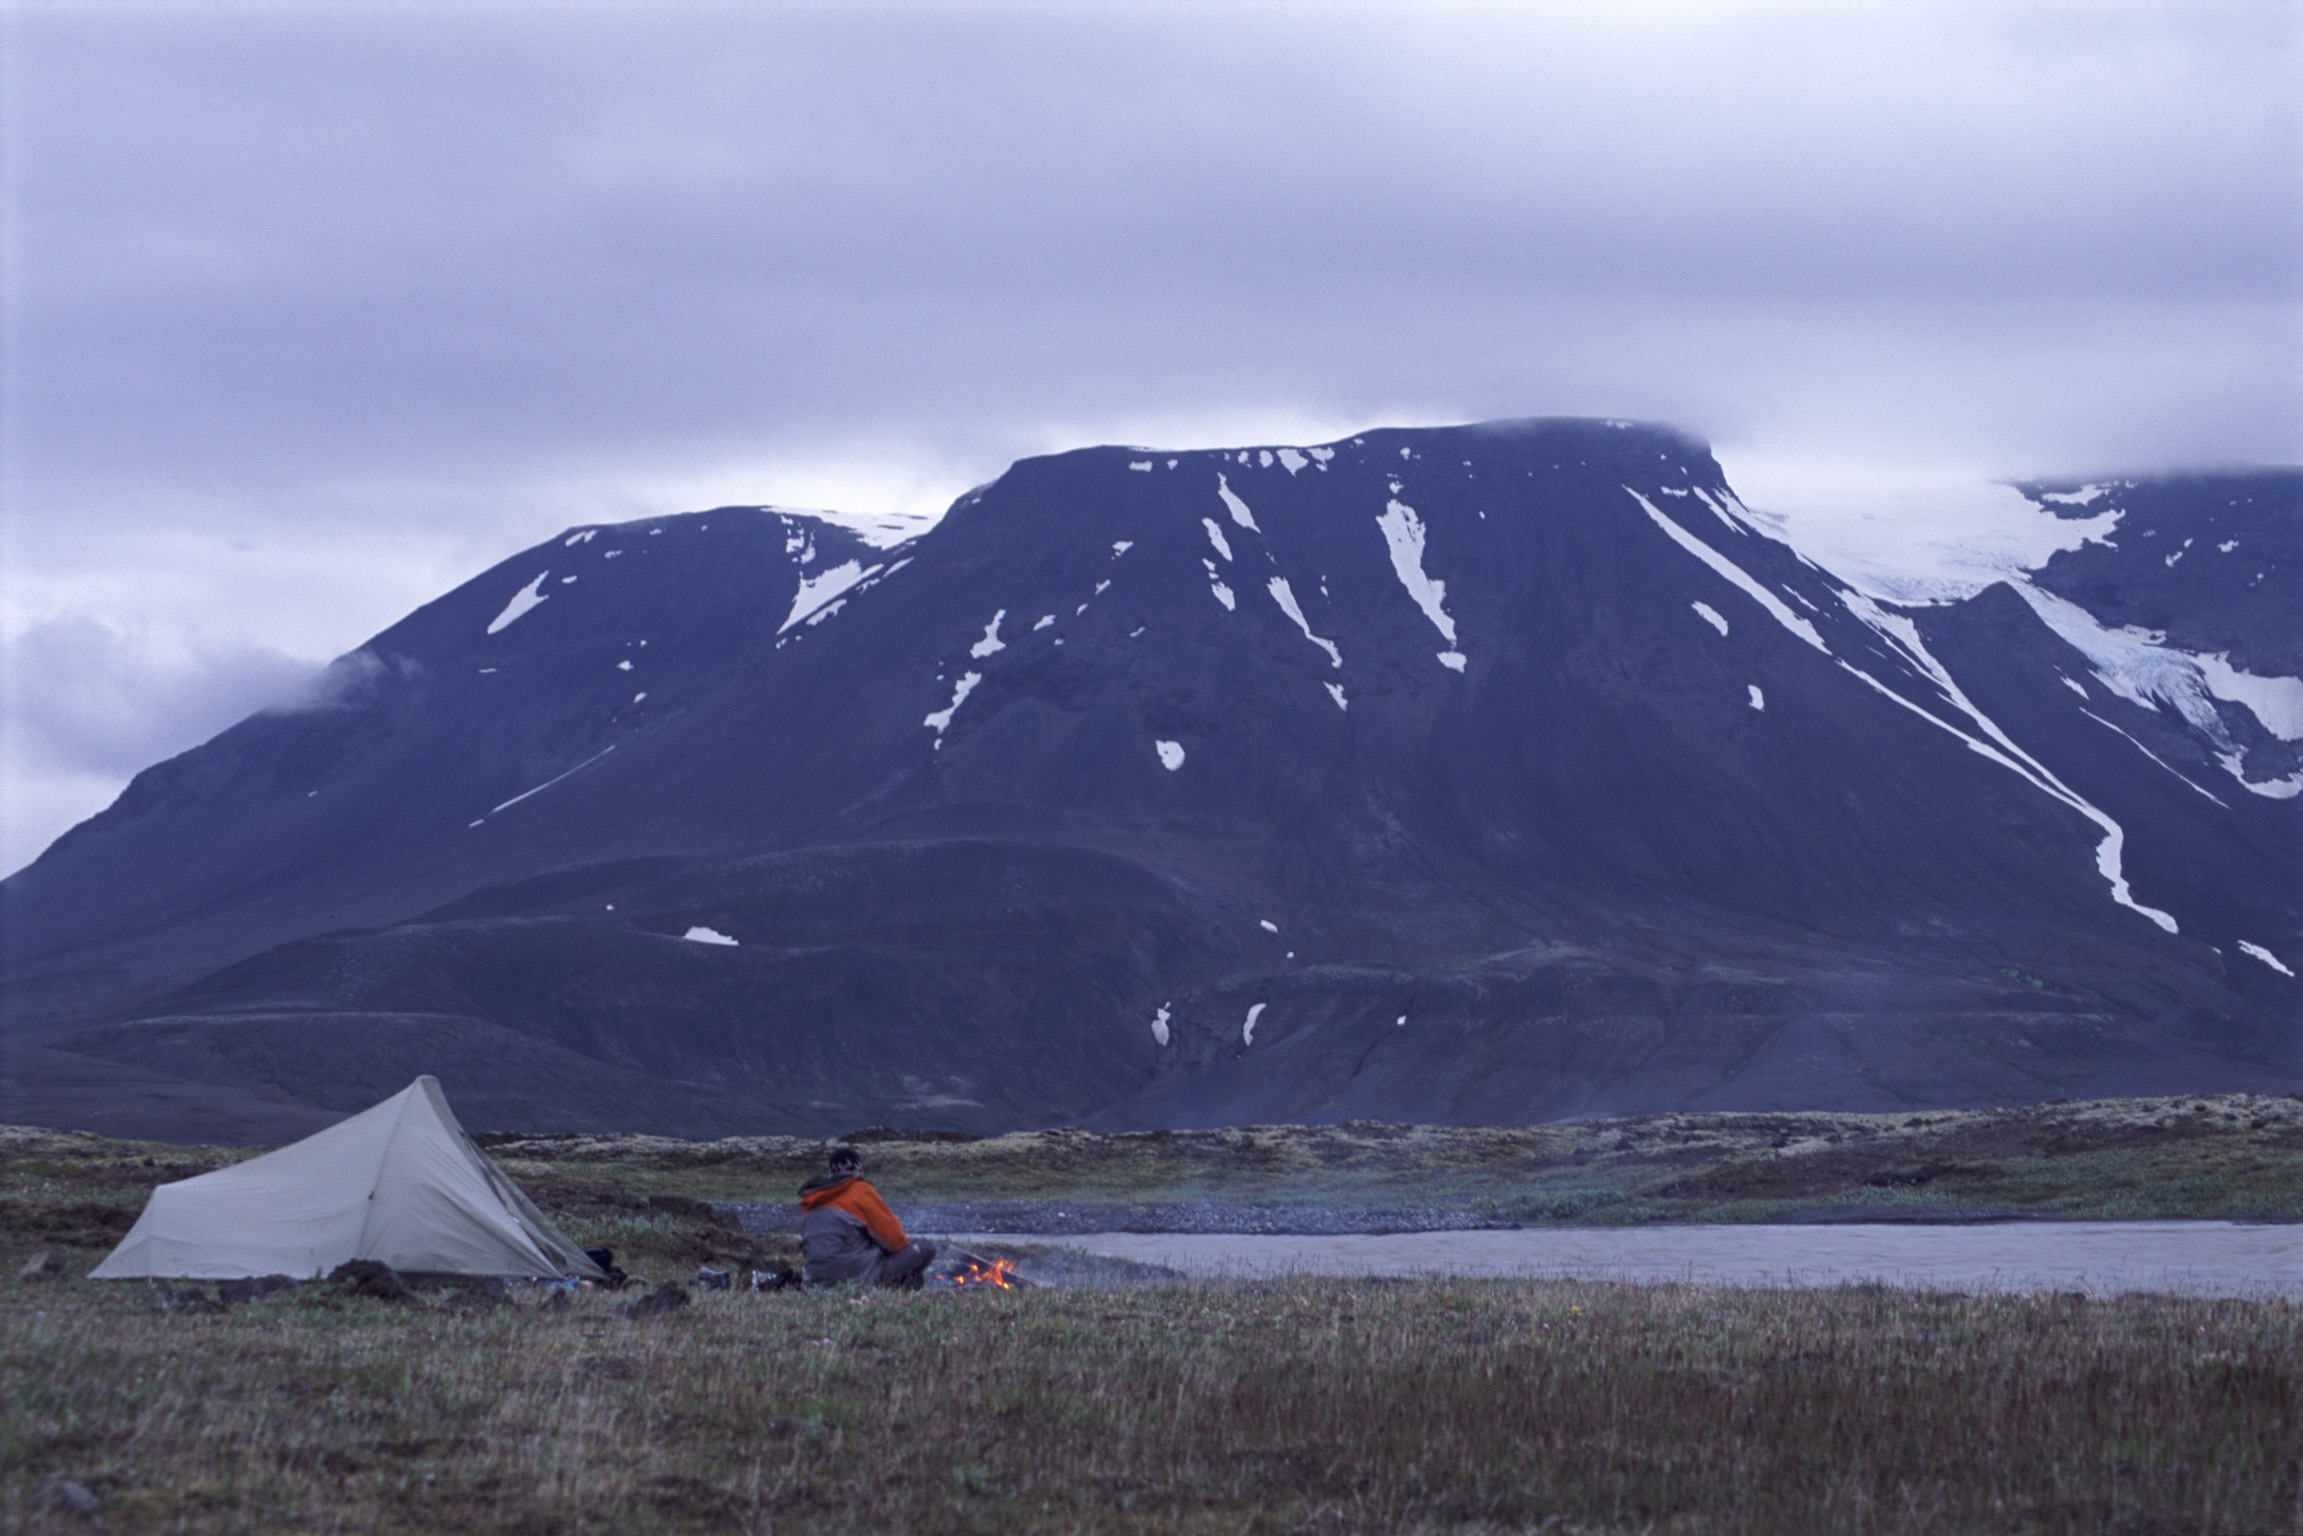 Camping in Iceland on the lowland plains below a snowy volcanic mountain range alongside a meltwater lake with a tent and person at a campfire